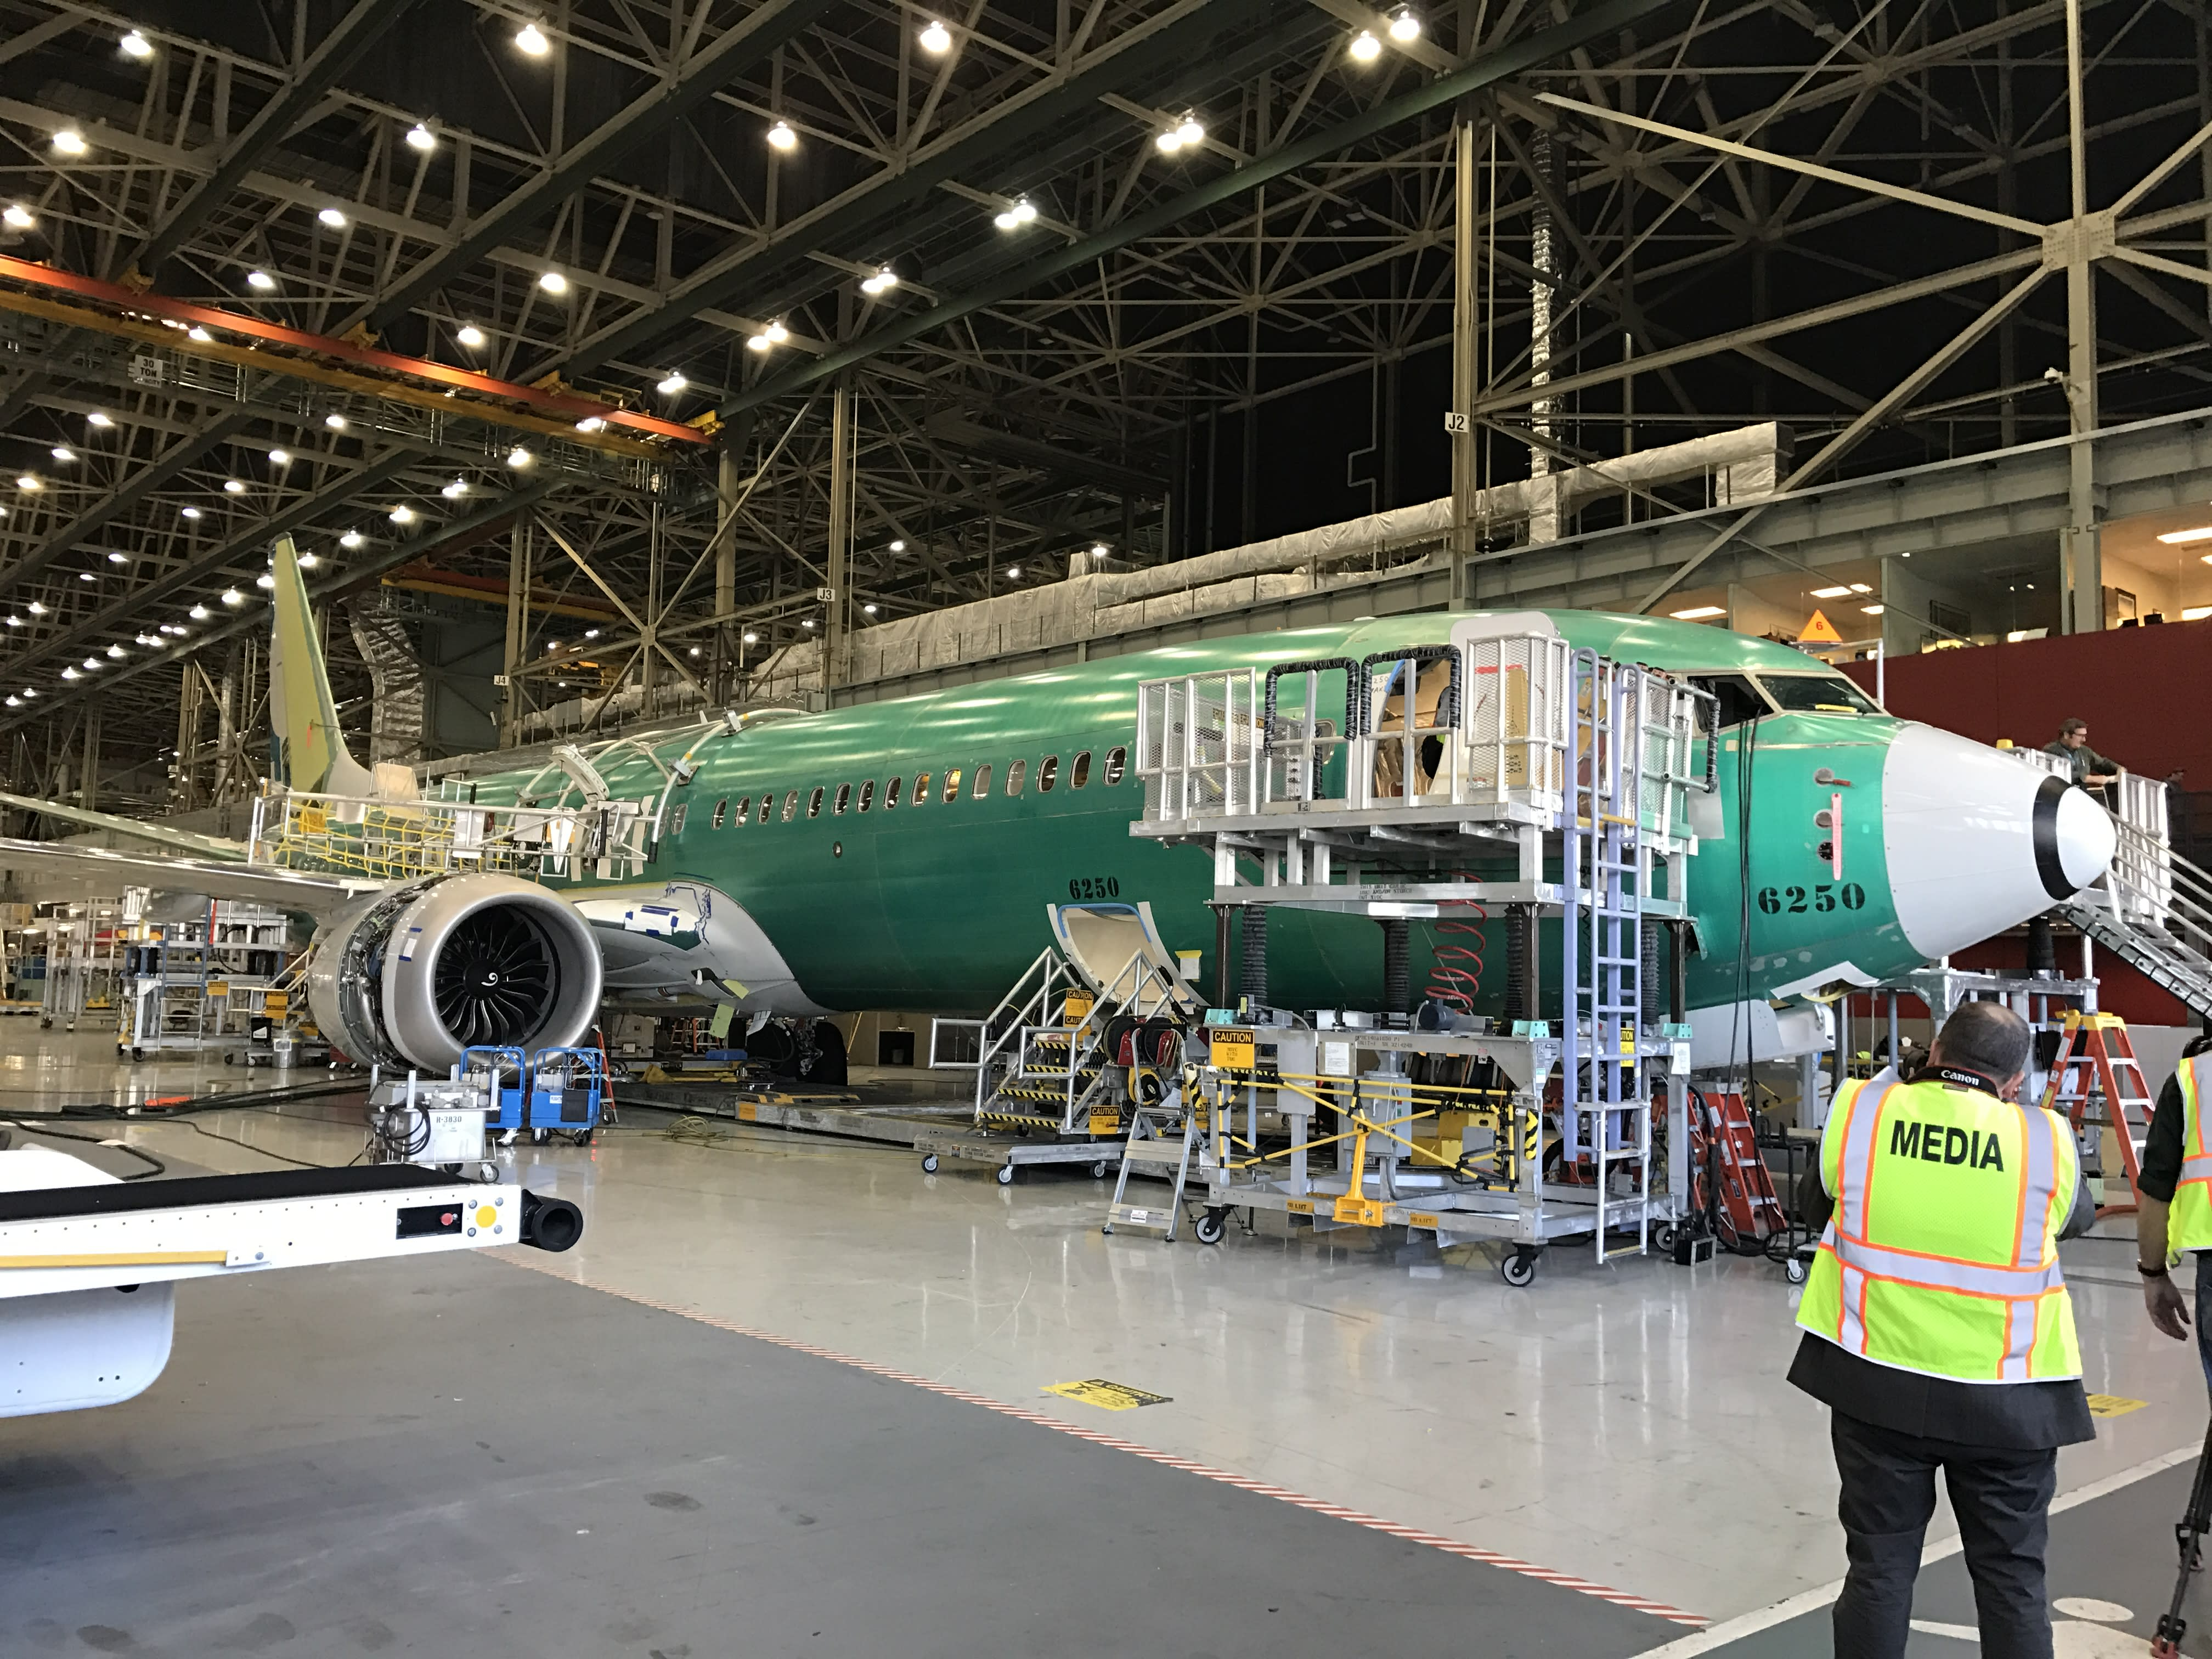 Get a sneak peek at Boeing's 737 MAX 9 jet – and the